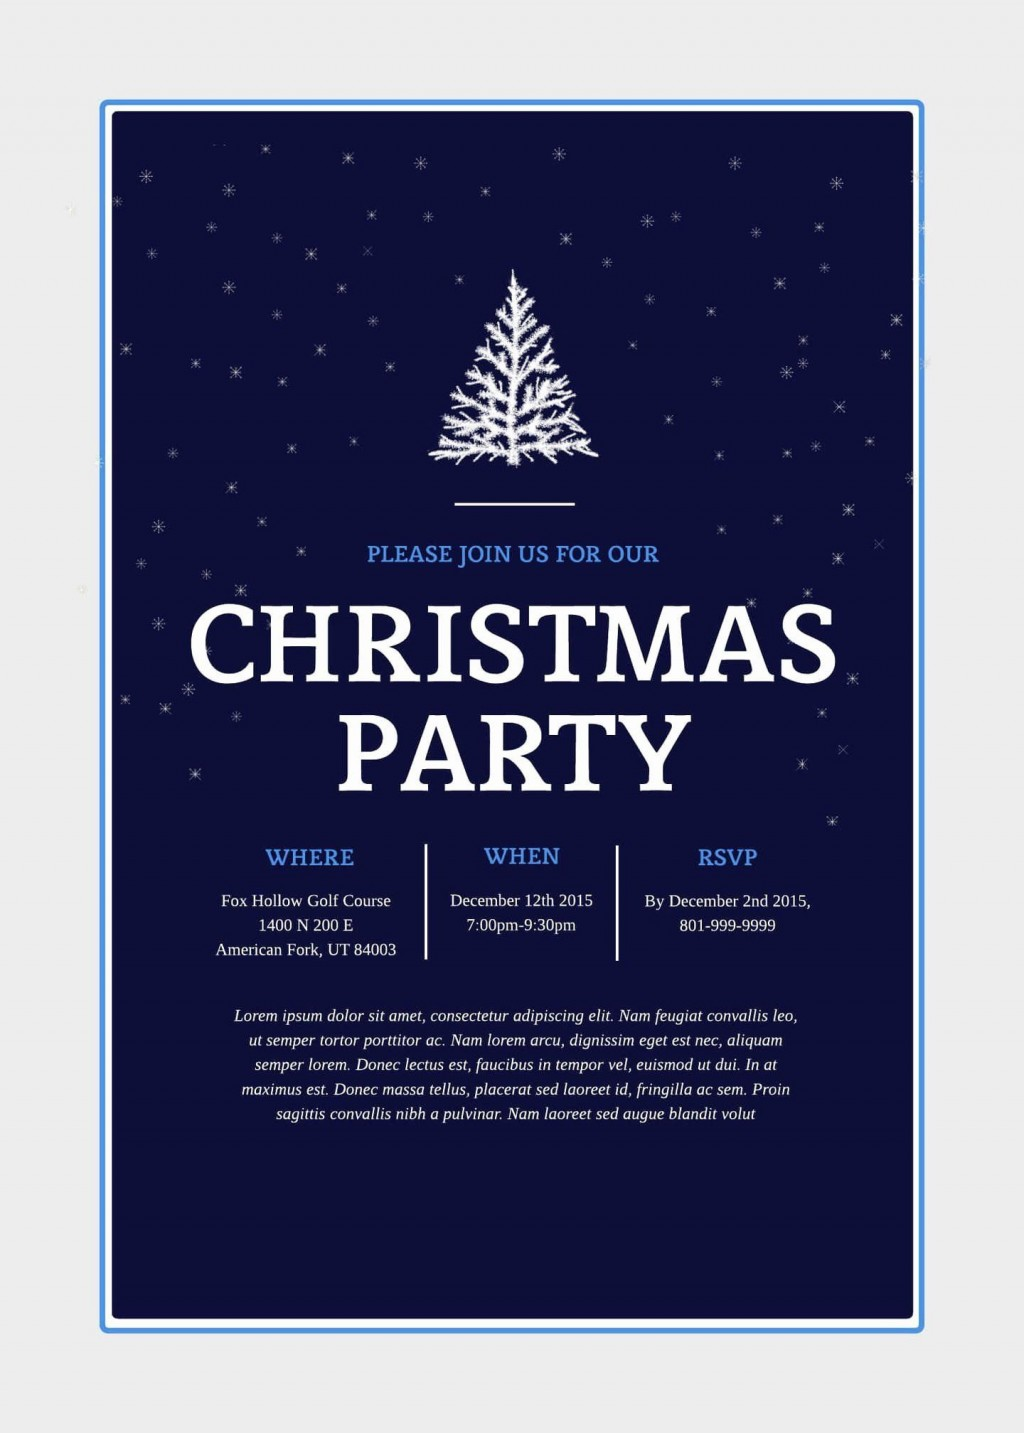 002 Archaicawful Free Email Holiday Party Invitation Template Highest Quality  Templates ChristmaLarge